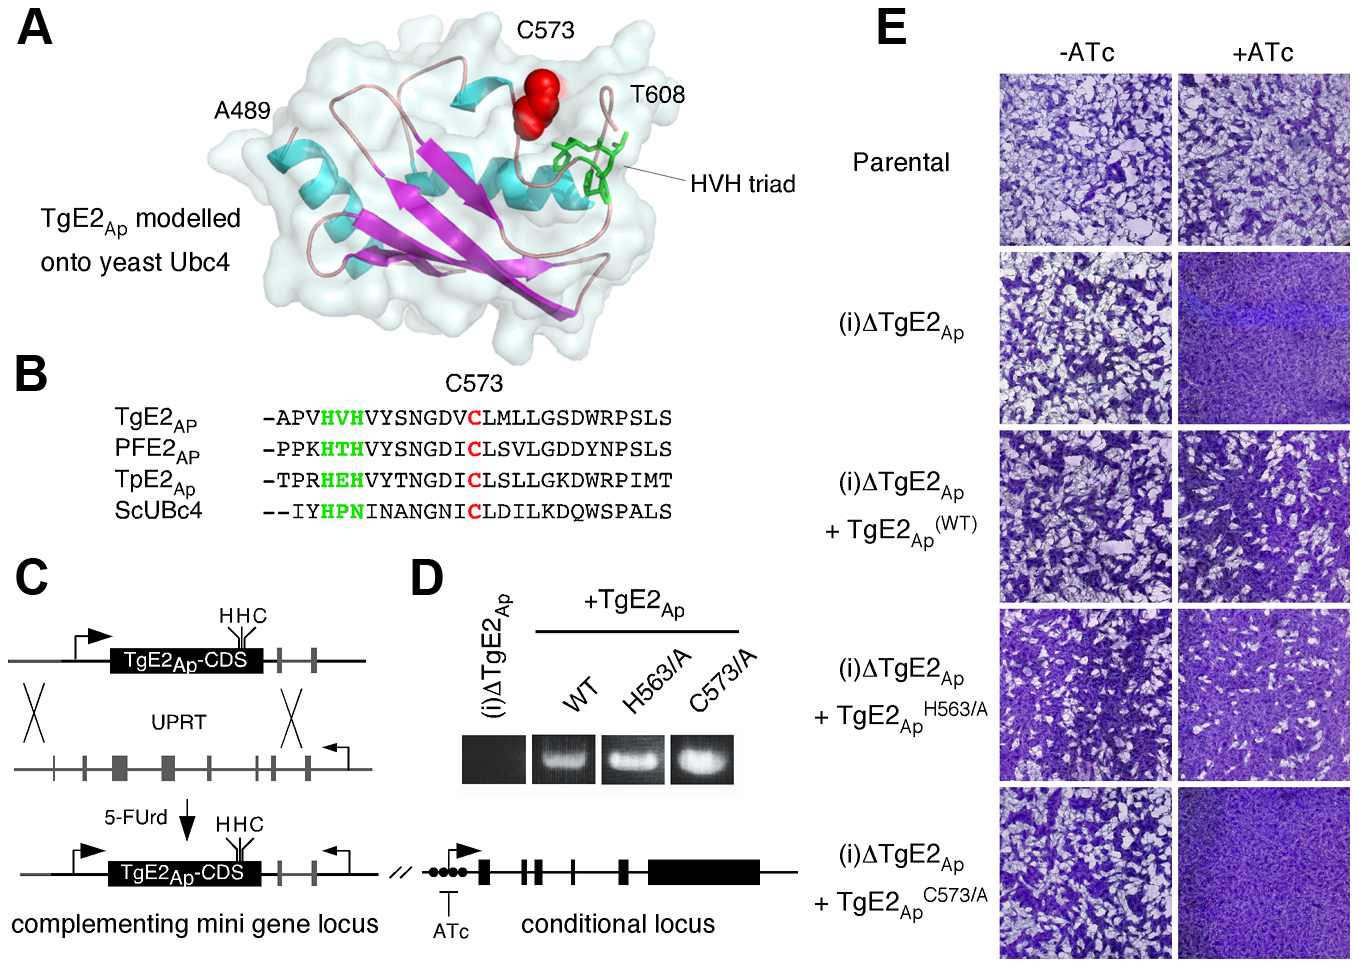 Active site residues are required for functional complementation of the TgE2<sub>Ap</sub> null mutant.